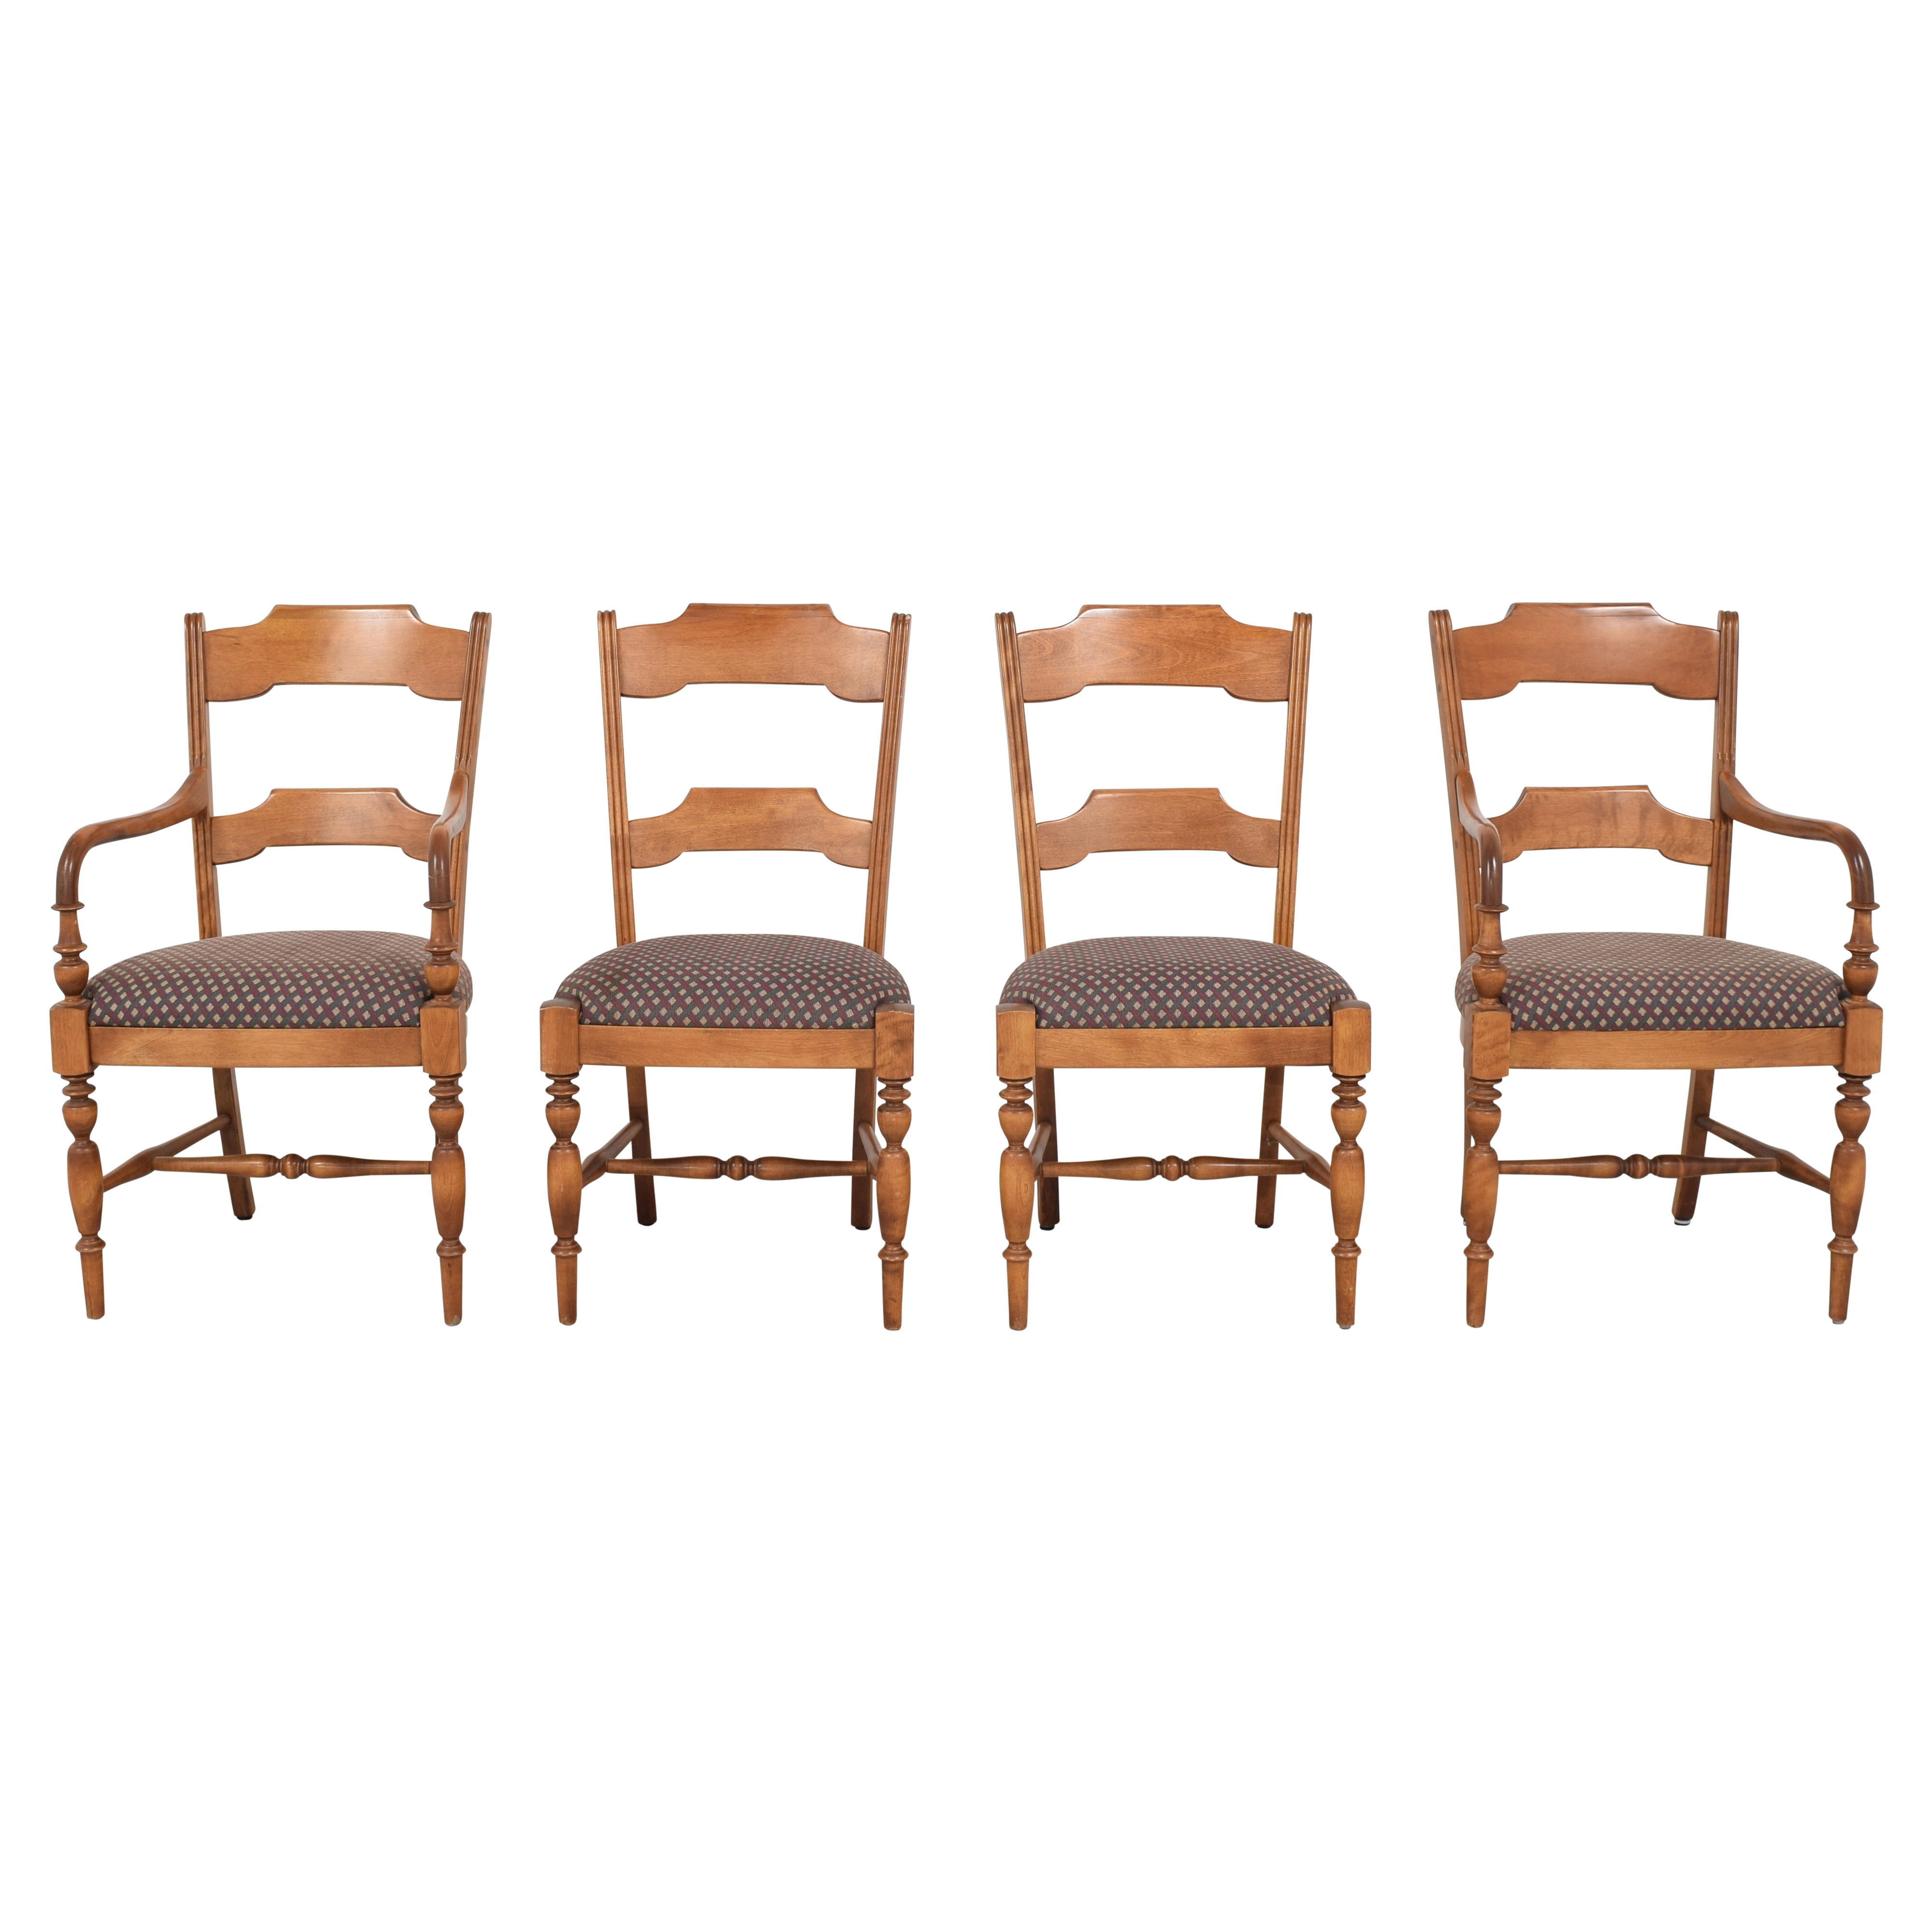 buy Nichols & Stone Dining Chairs Nichols & Stone Dining Chairs